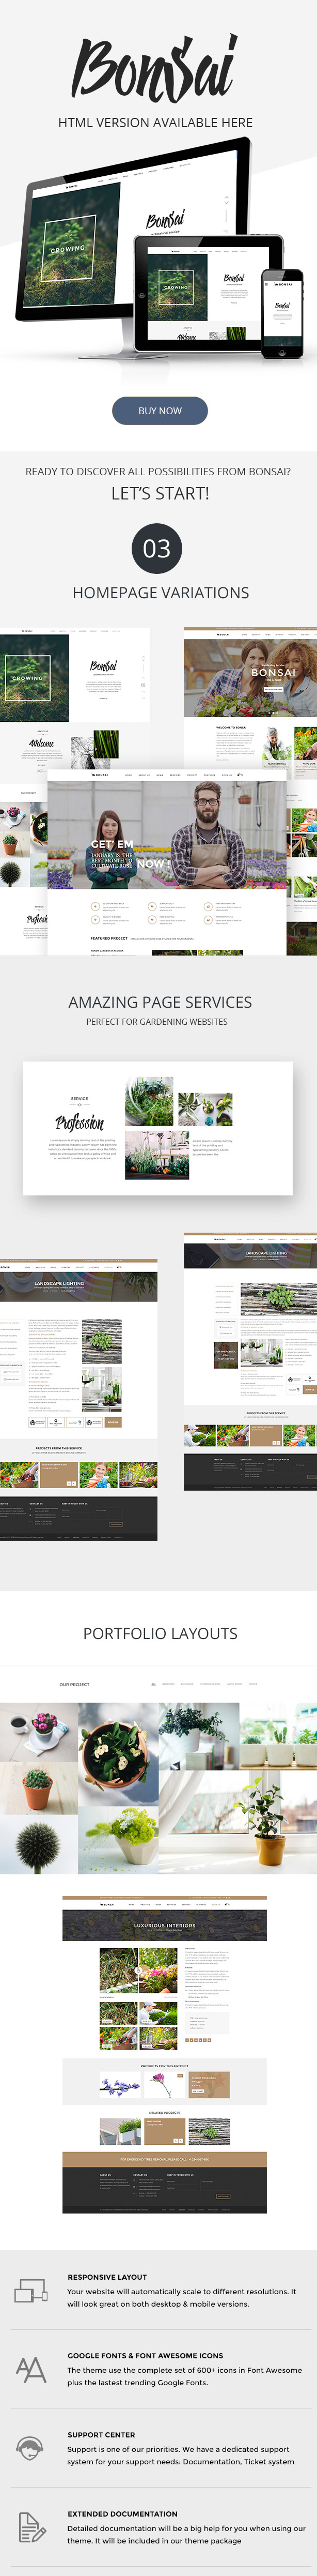 demo for Bonsai HTML template